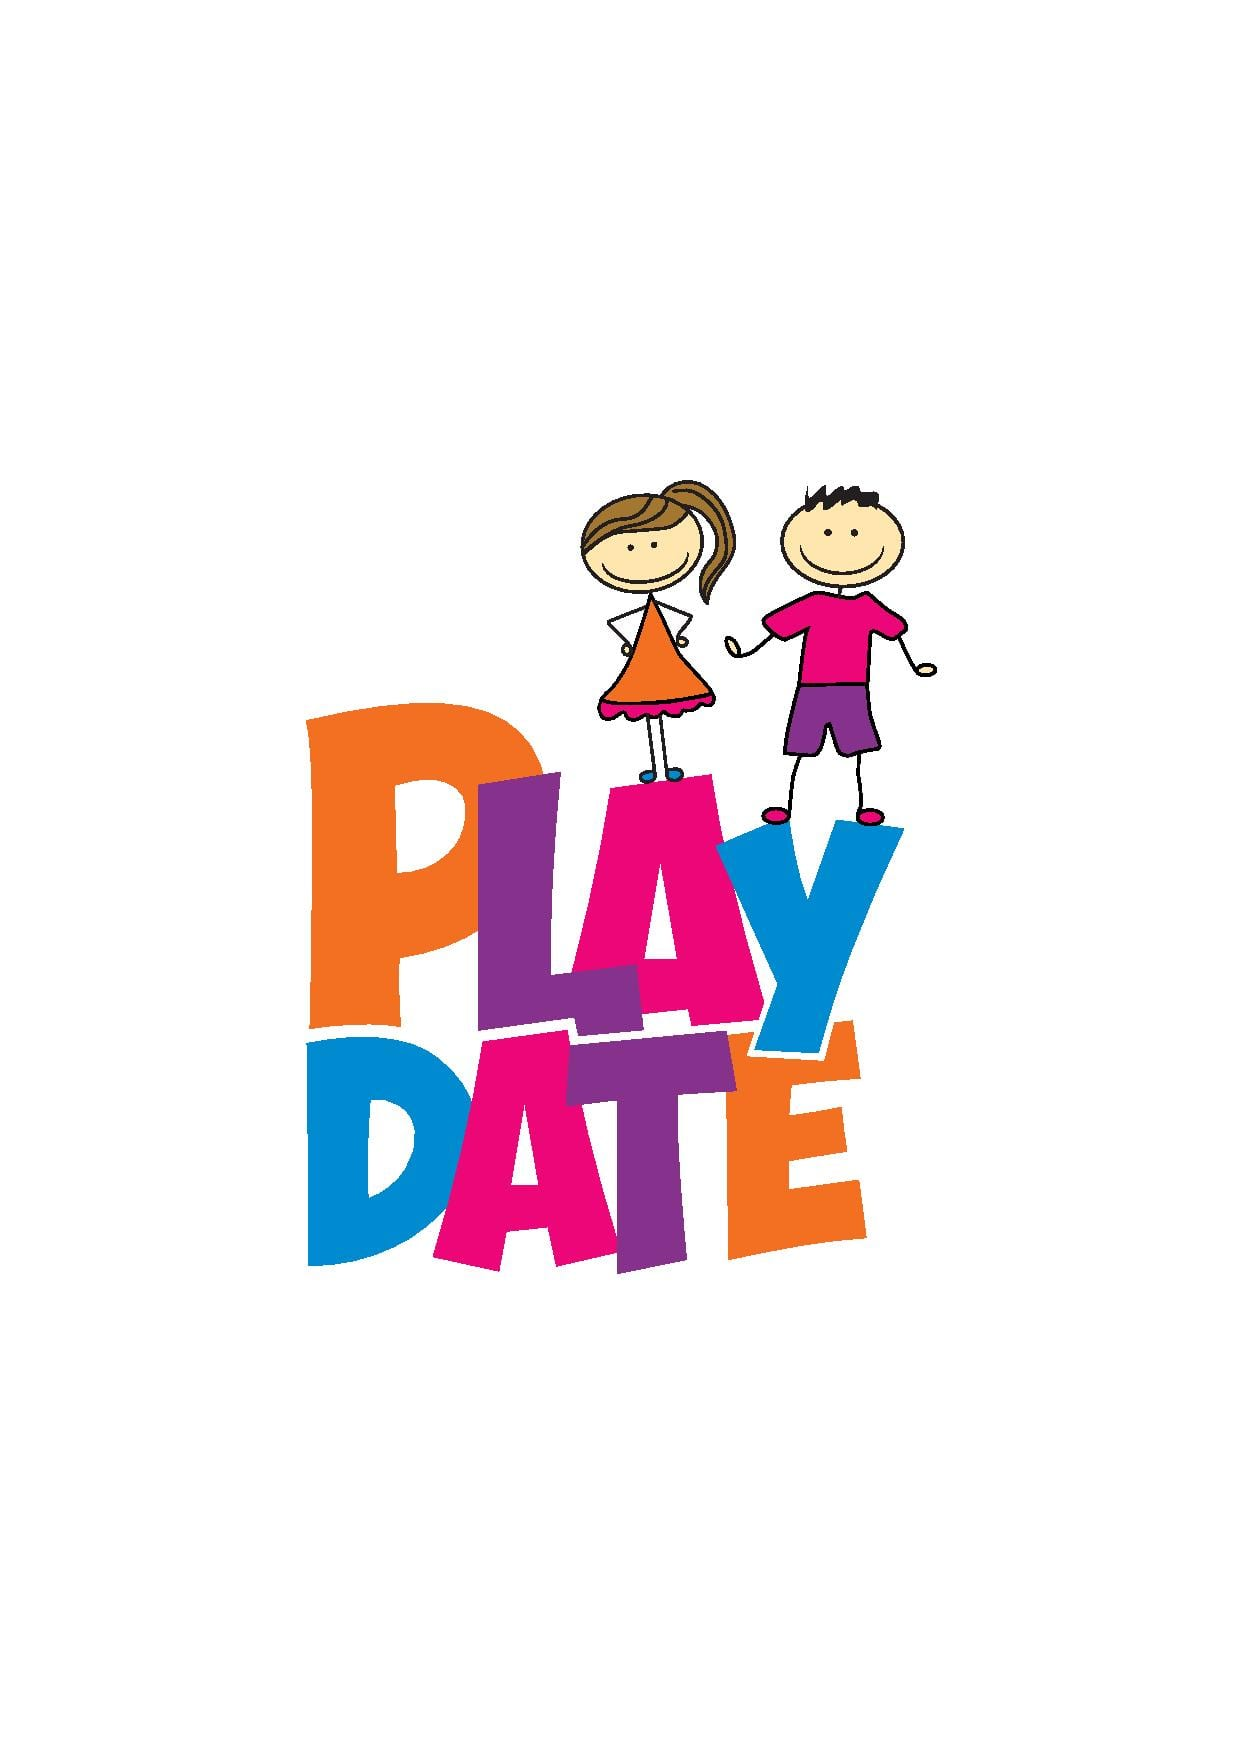 Play Date 20% on drop off fees Image